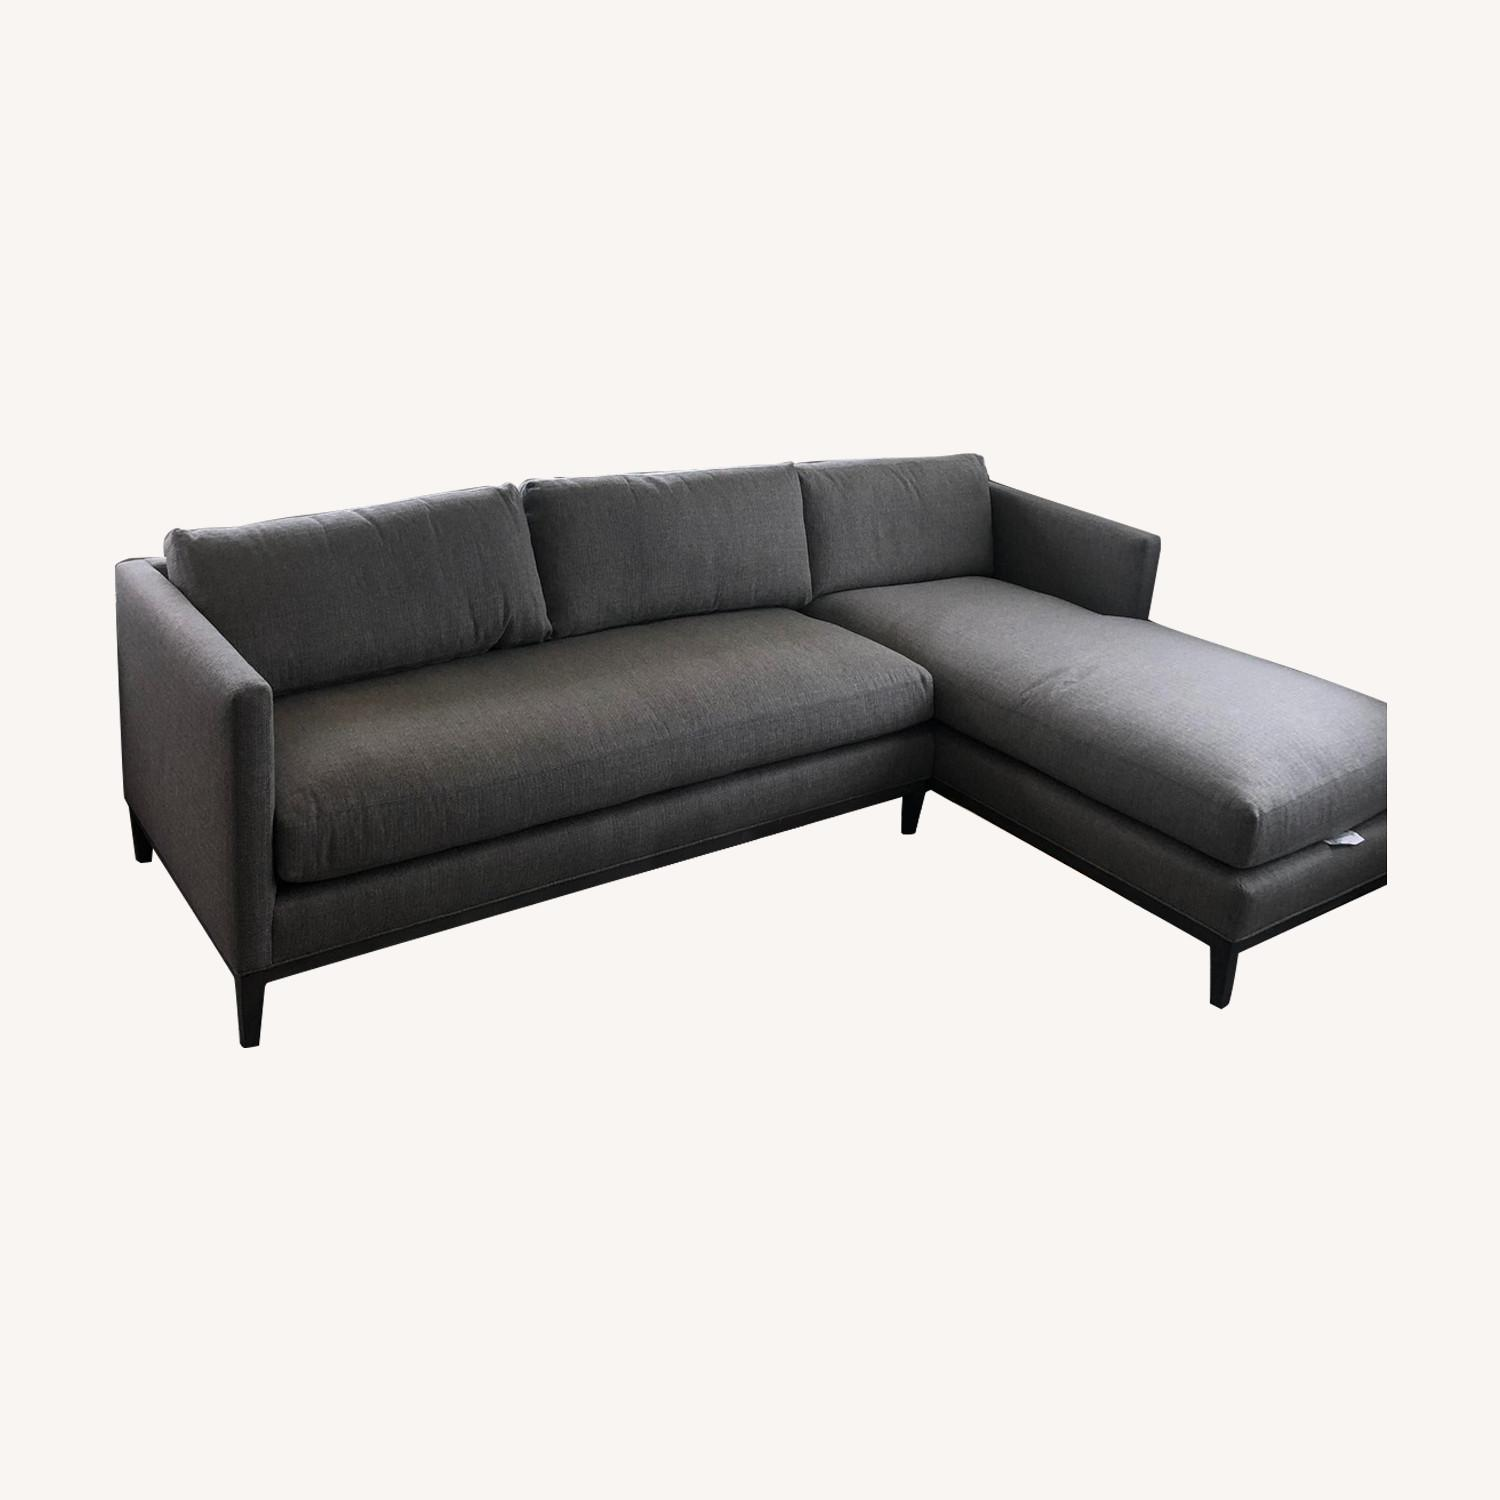 Safavieh Mid Century Modern Sectional w/Chaise - image-0